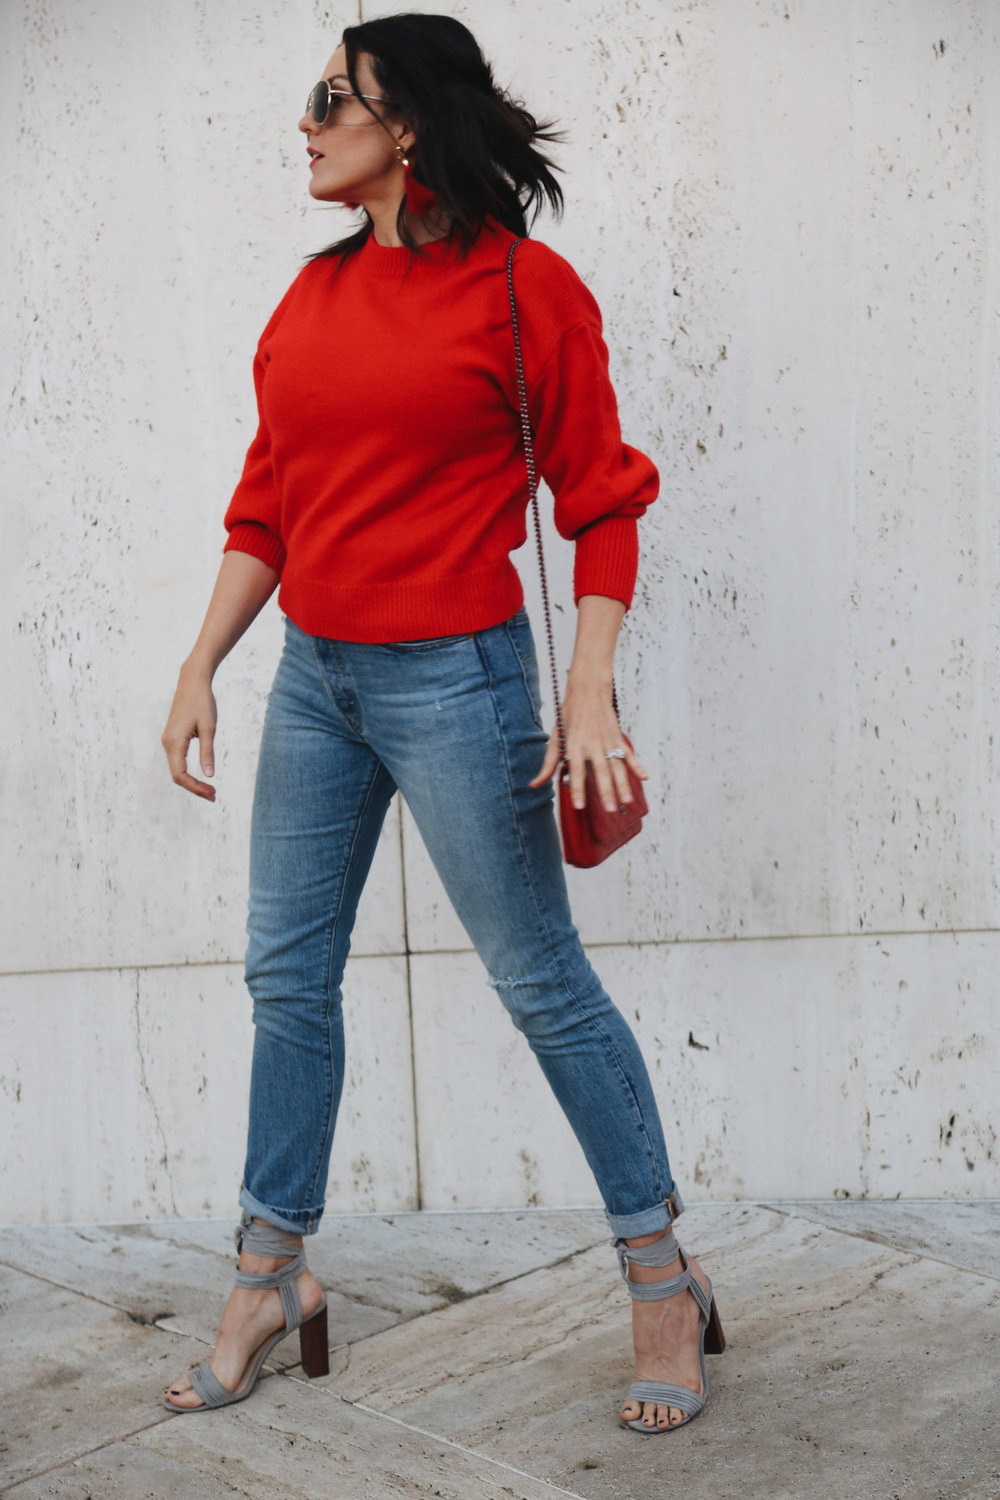 how to wear red for the holidays1.jpg